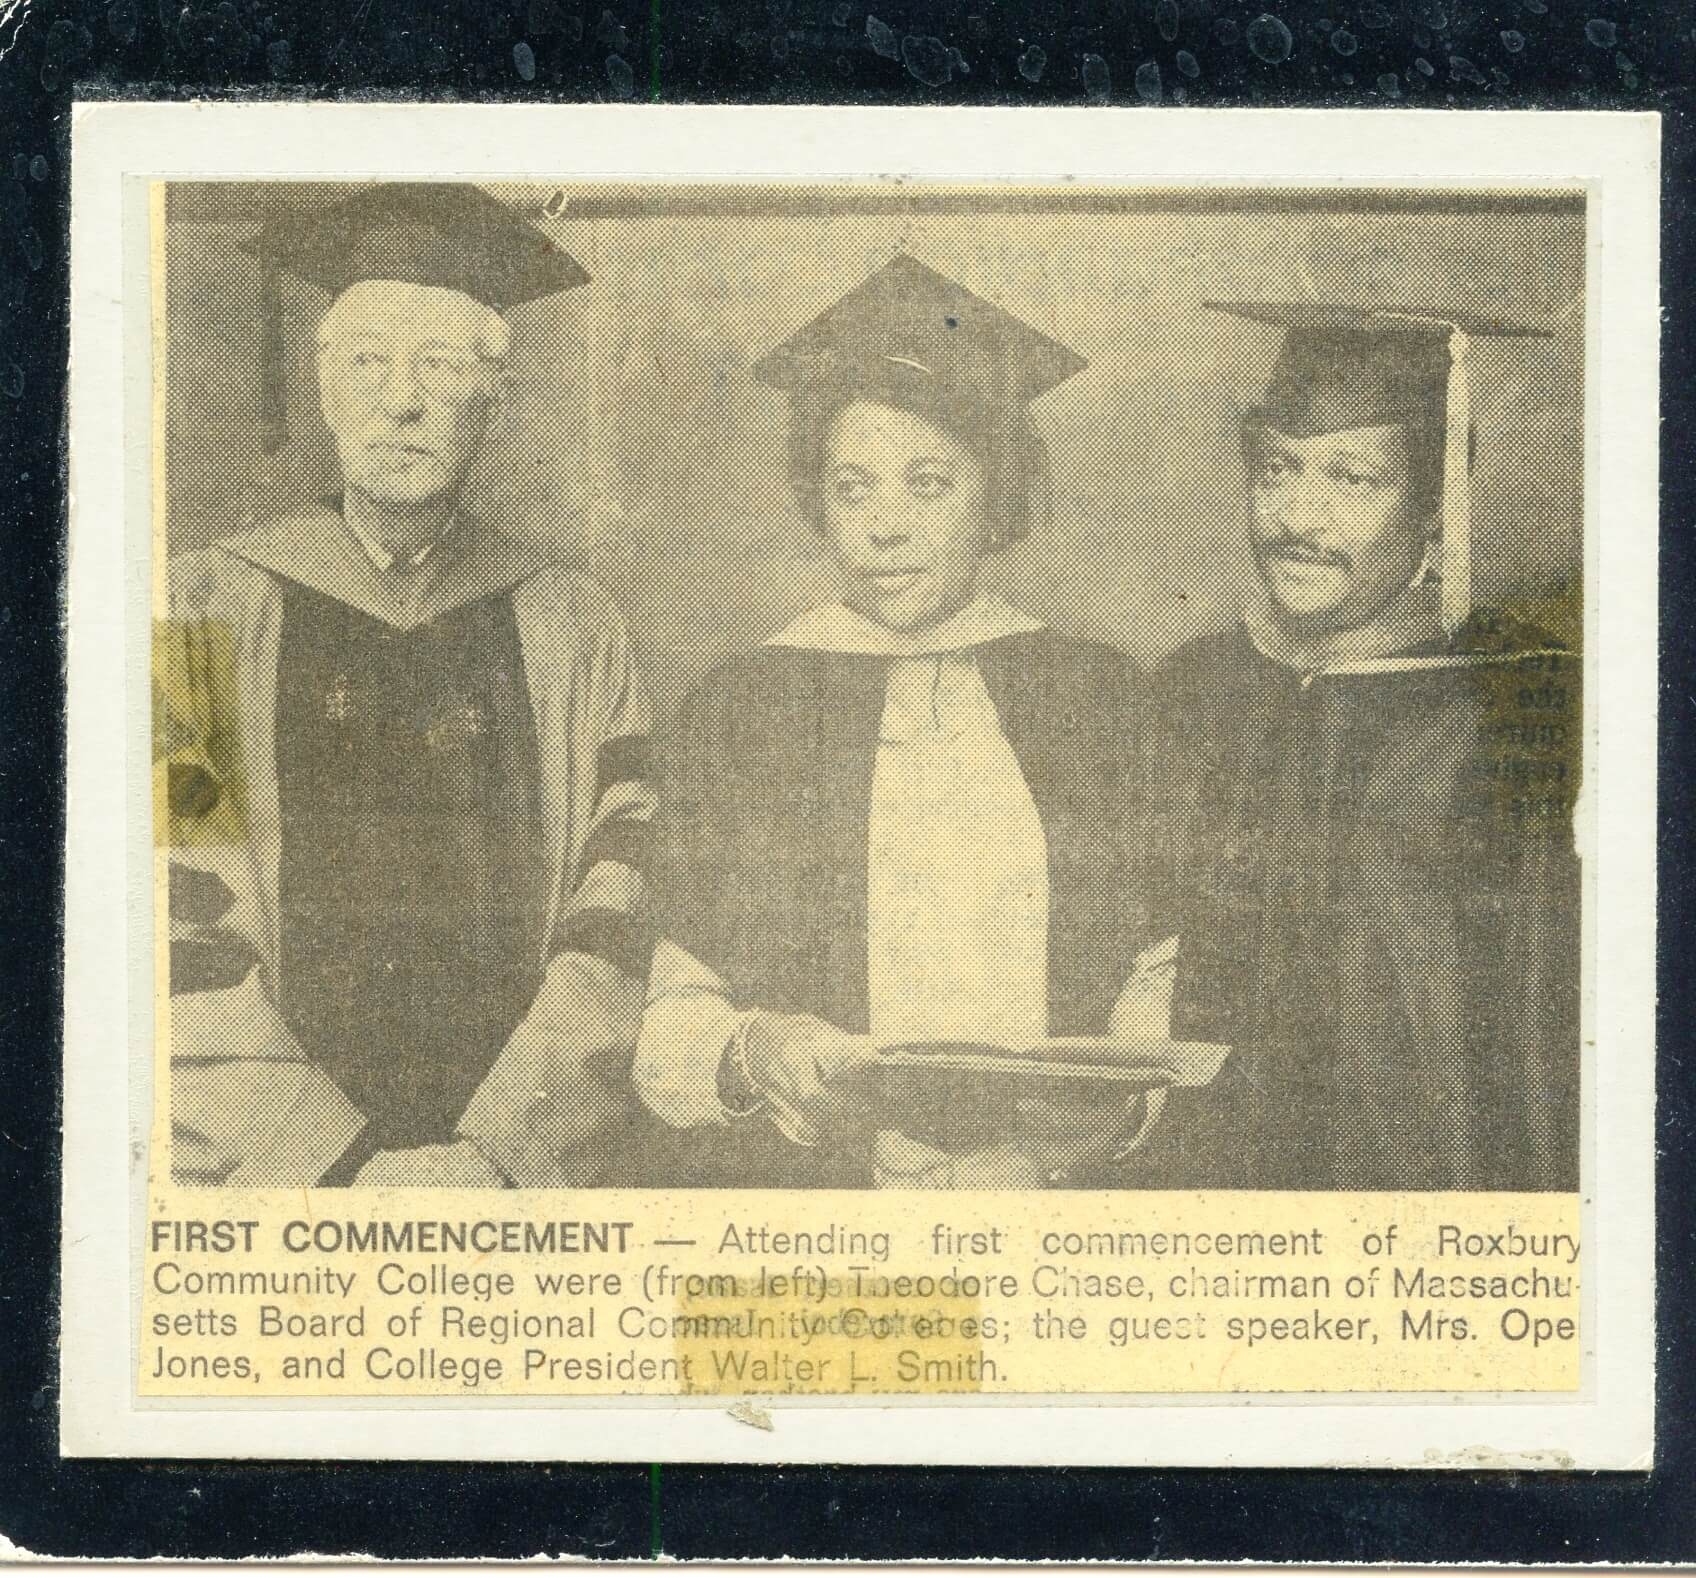 ATTENDEES AT THE FIRST COMMENCEMENT, ROXBURY COMMUNITY COLLEGE; THEODORE CHASE, OPEL JONES, WALTER L. SMITH (1975)